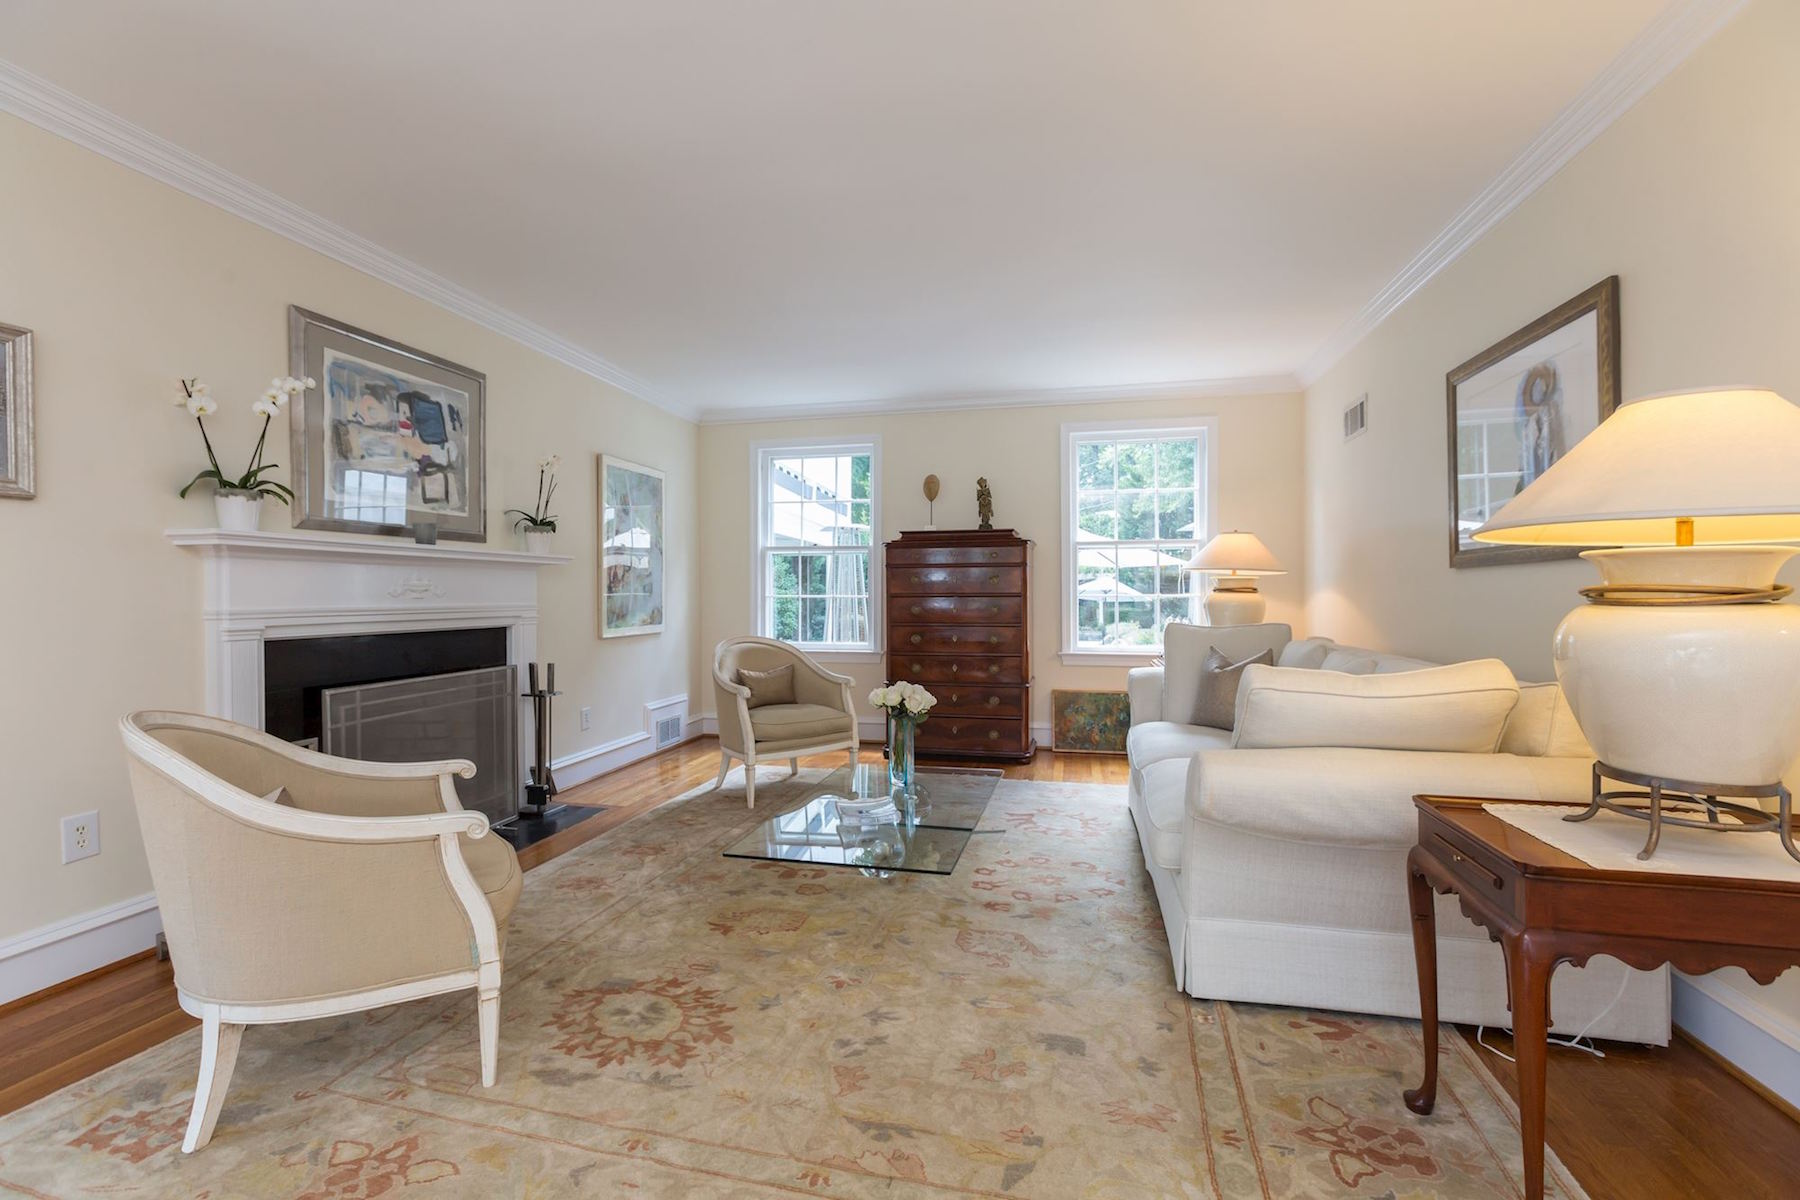 Additional photo for property listing at 5153 Tilden Street 5153 Tilden Street Nw Washington, District De Columbia 20016 États-Unis